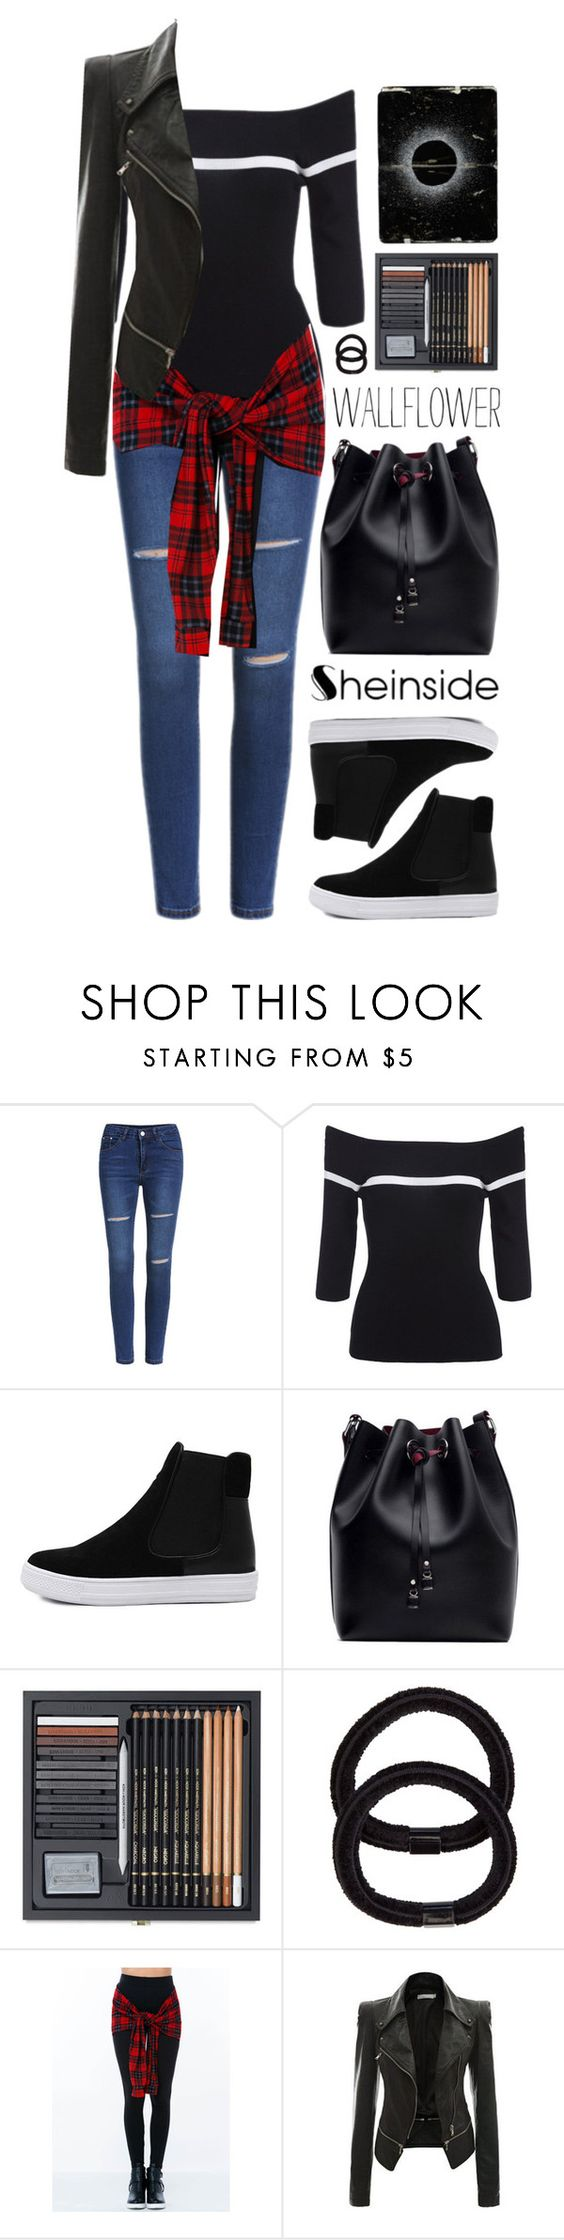 """""""SheIn 10"""" by scarlett-morwenna ❤ liked on Polyvore featuring Wallflower, John Lewis and vintage"""